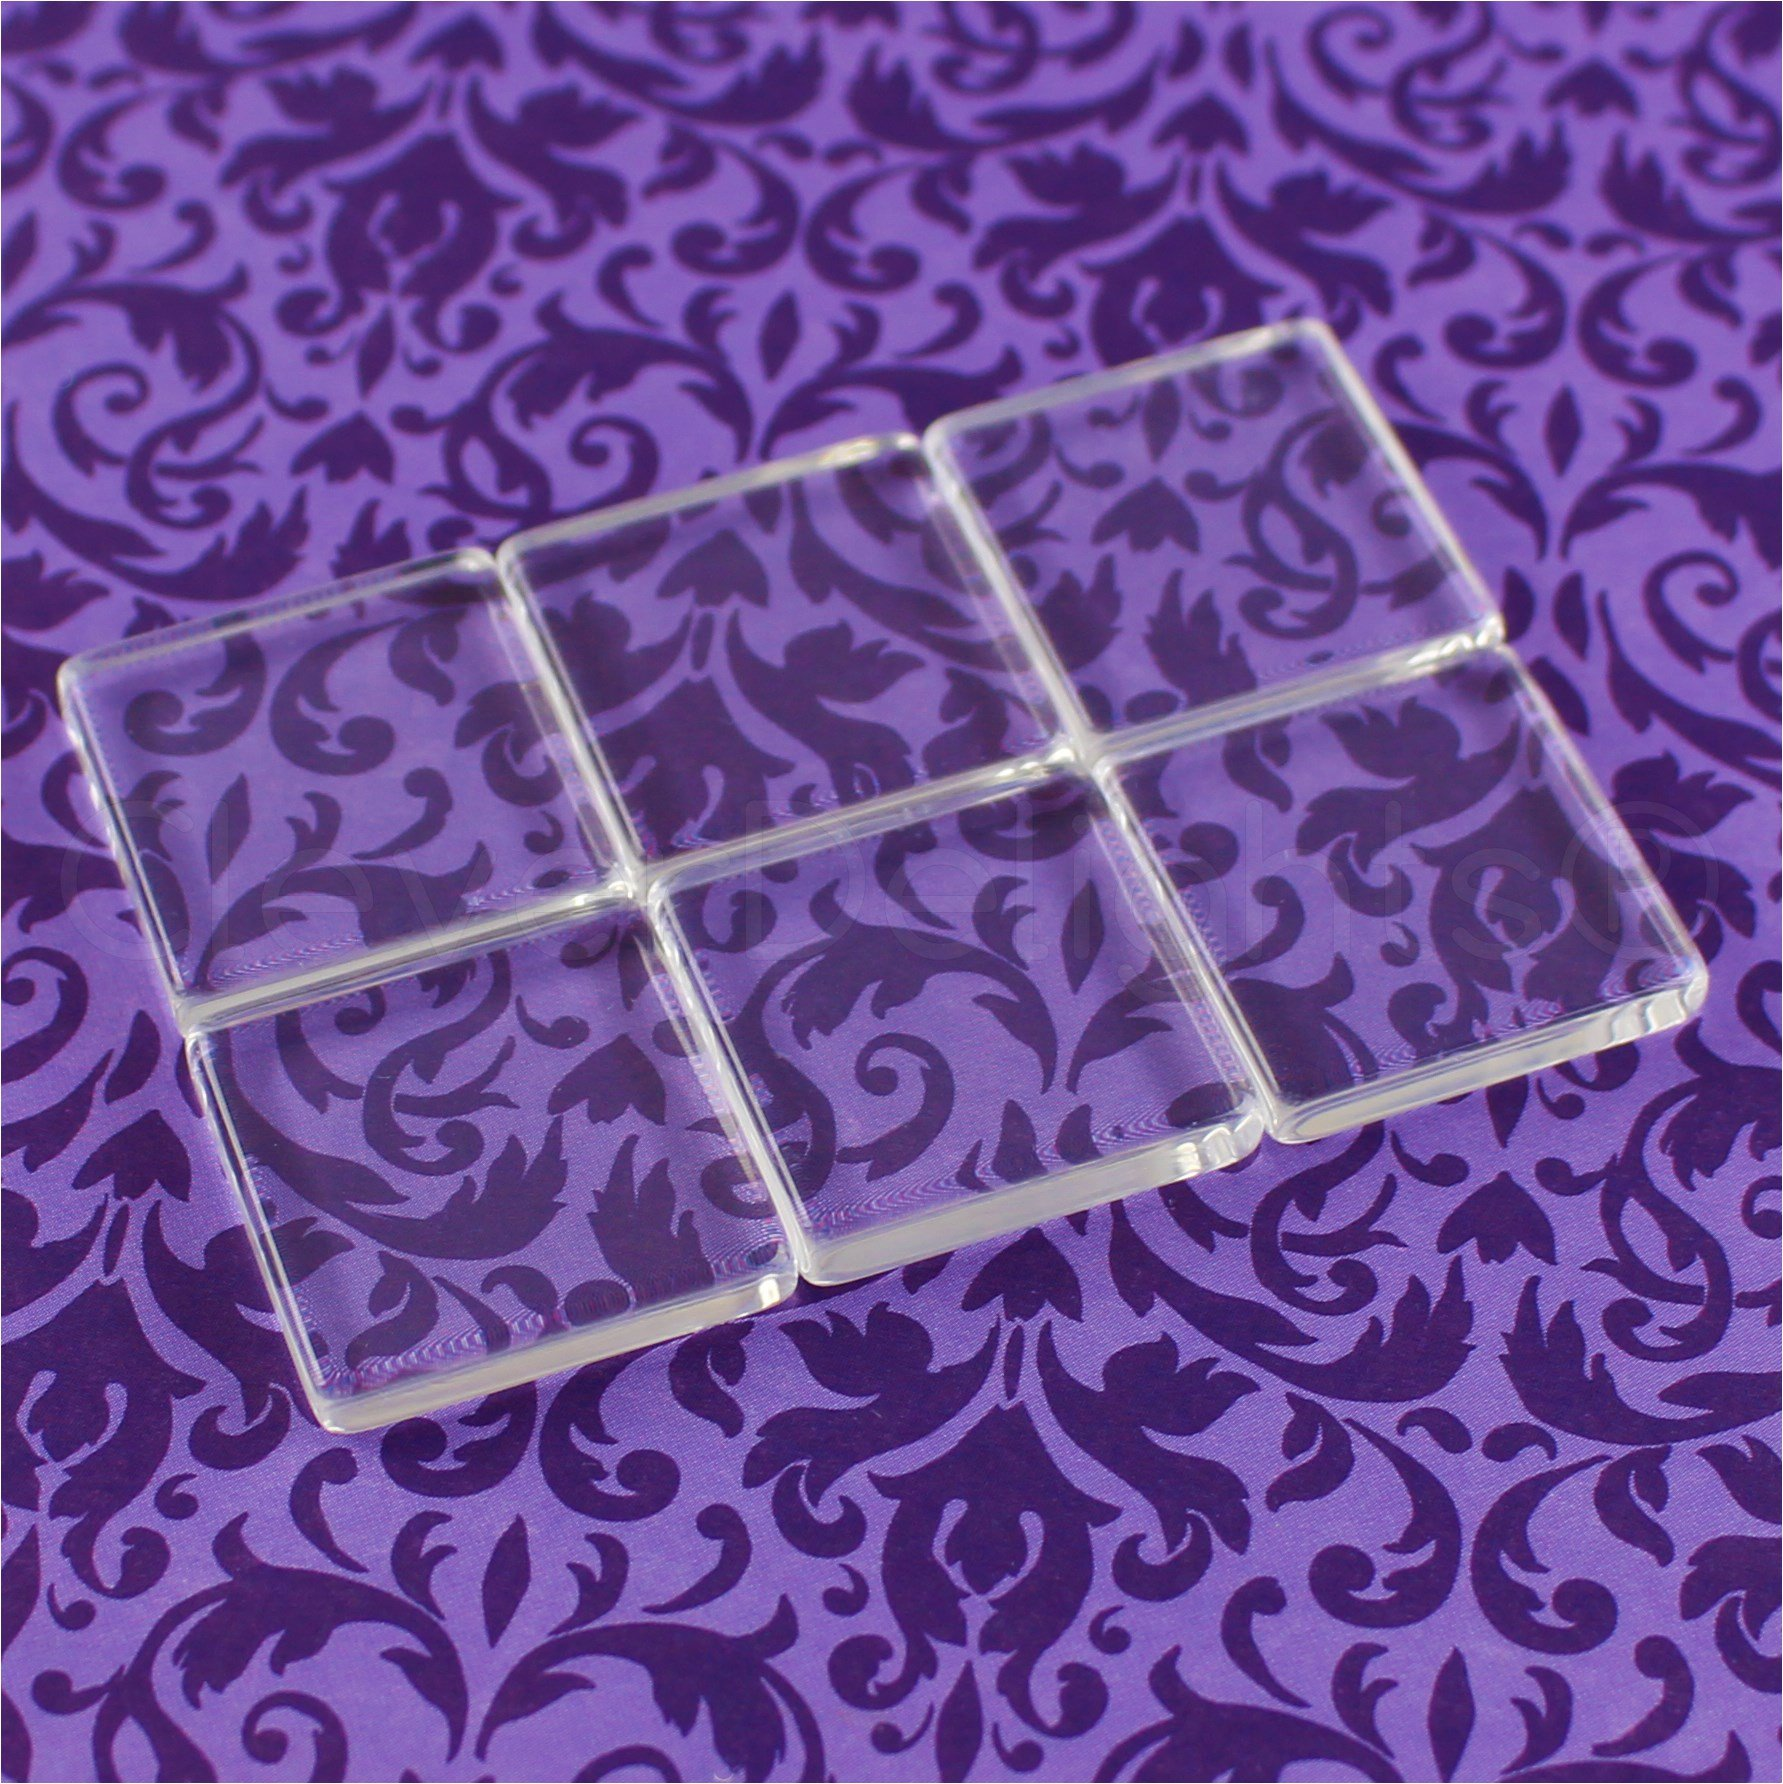 40 CleverDelights Square Glass Tiles - 1 Inch - Clear Tiles - Glass Cabochons - For Photo Pendants Mosaics Trays - 1'' 25mm Tiles - 4mm Thick